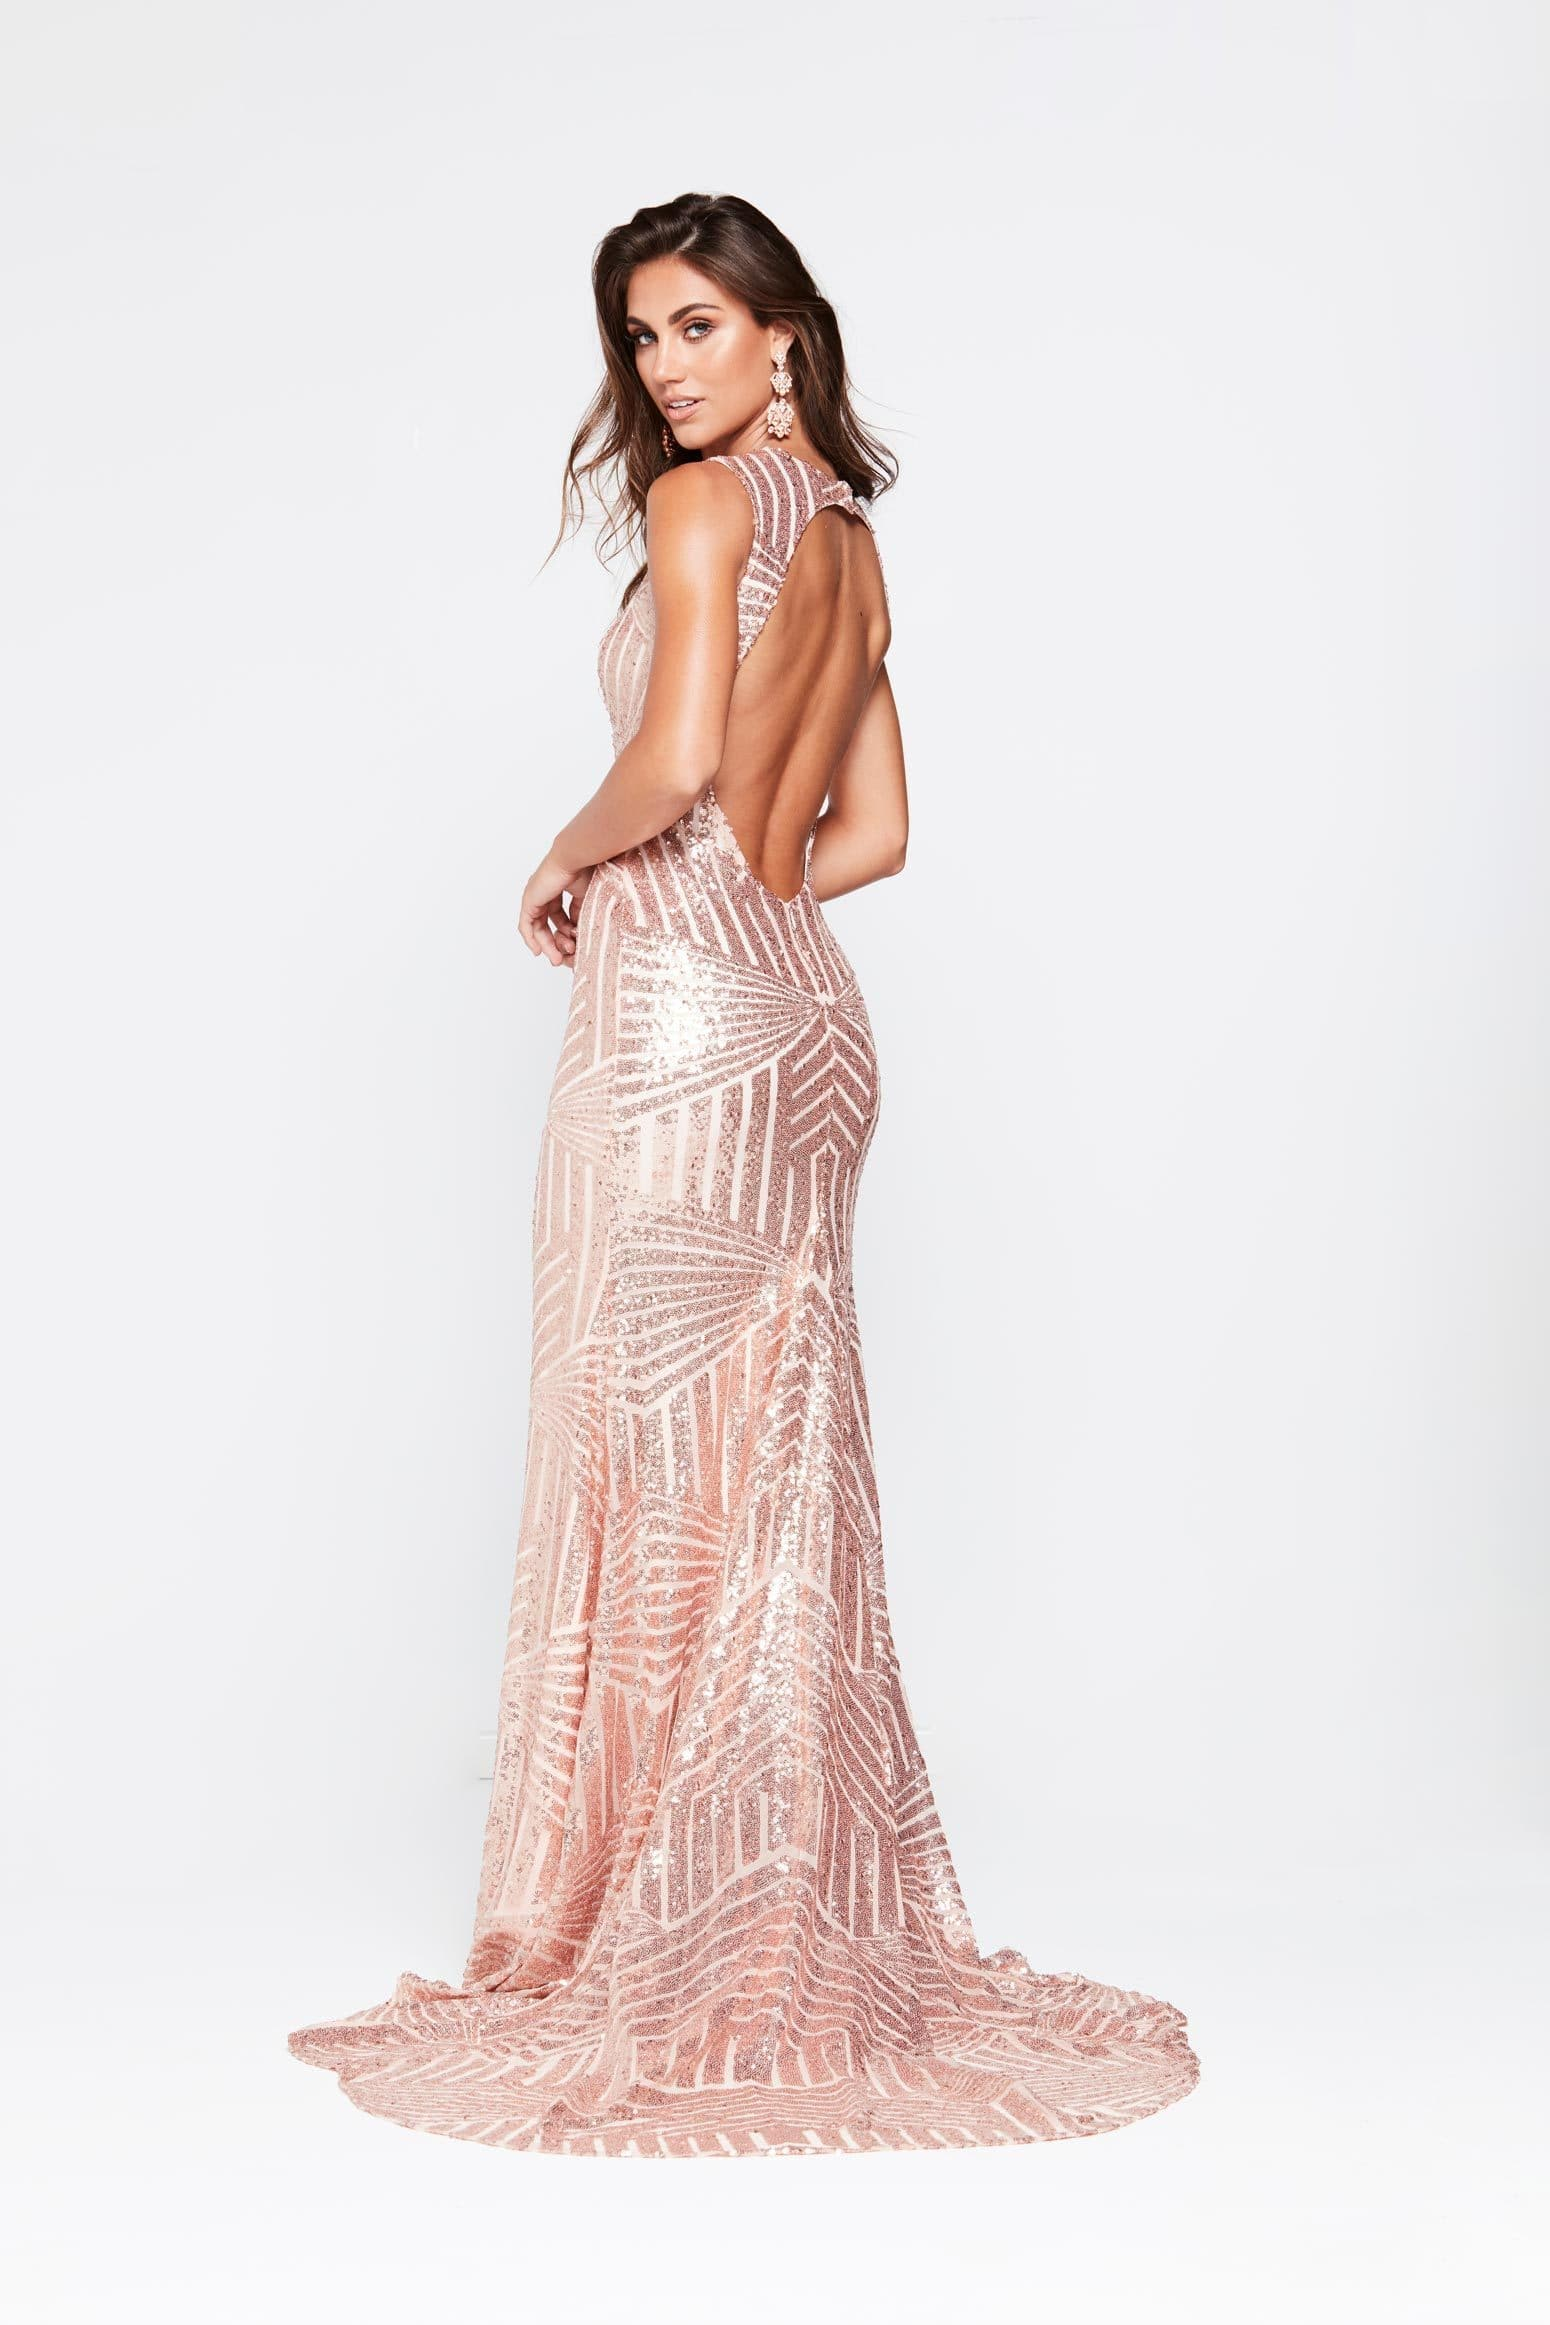 A&N Nicole - Rose Gold Sequin Gown with High Neckline and Open Back ...